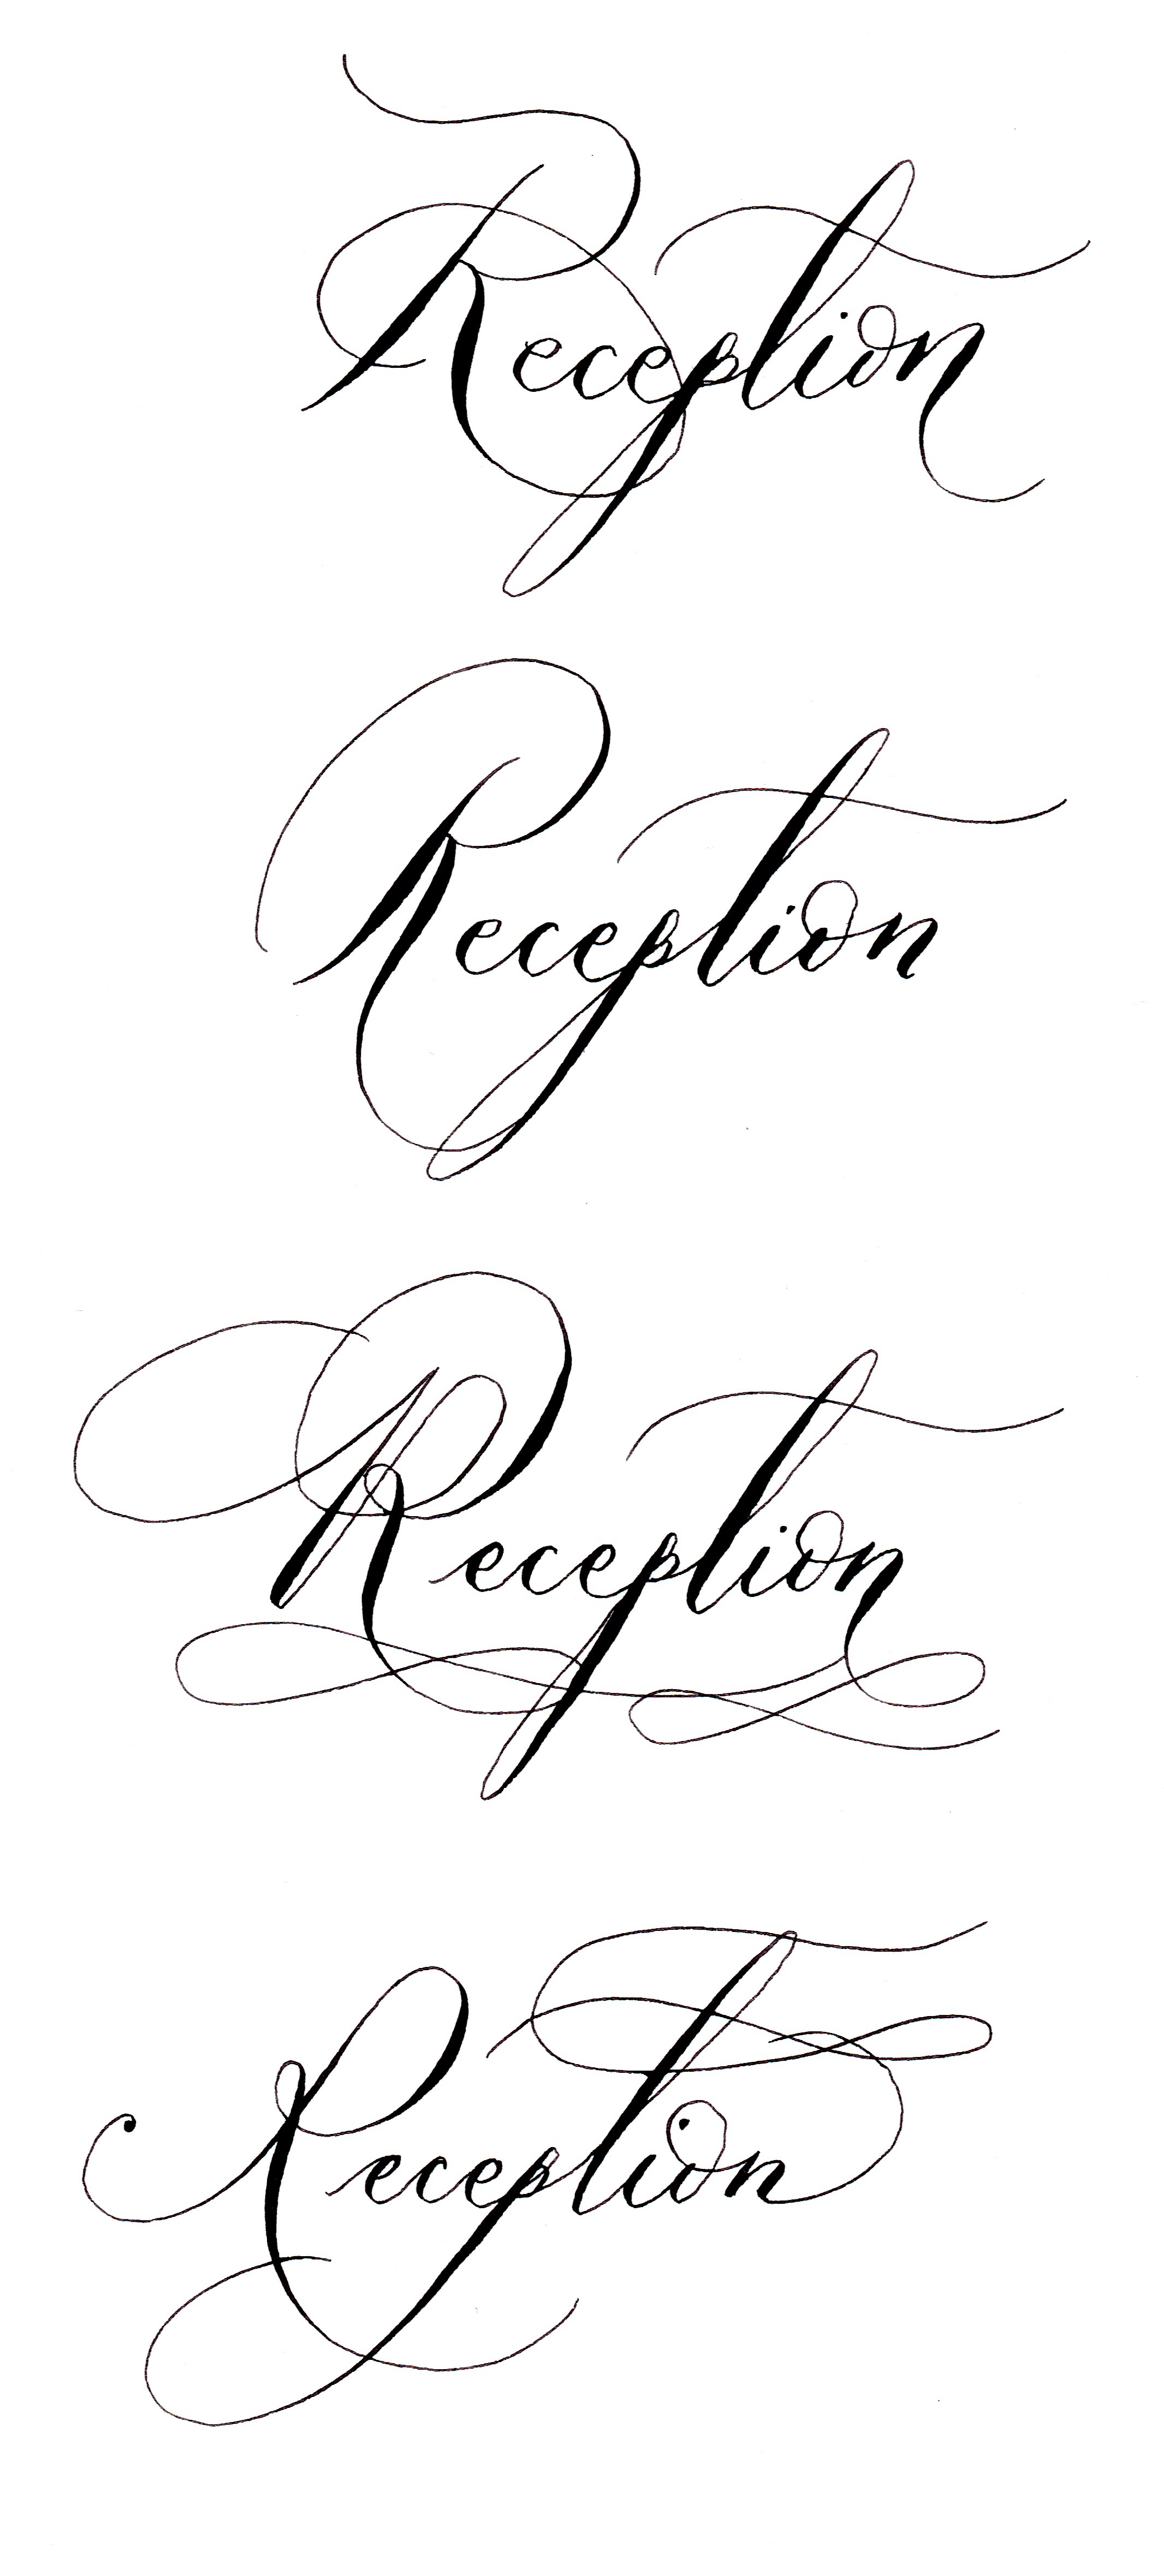 Calligraphy by hand with various reception word options